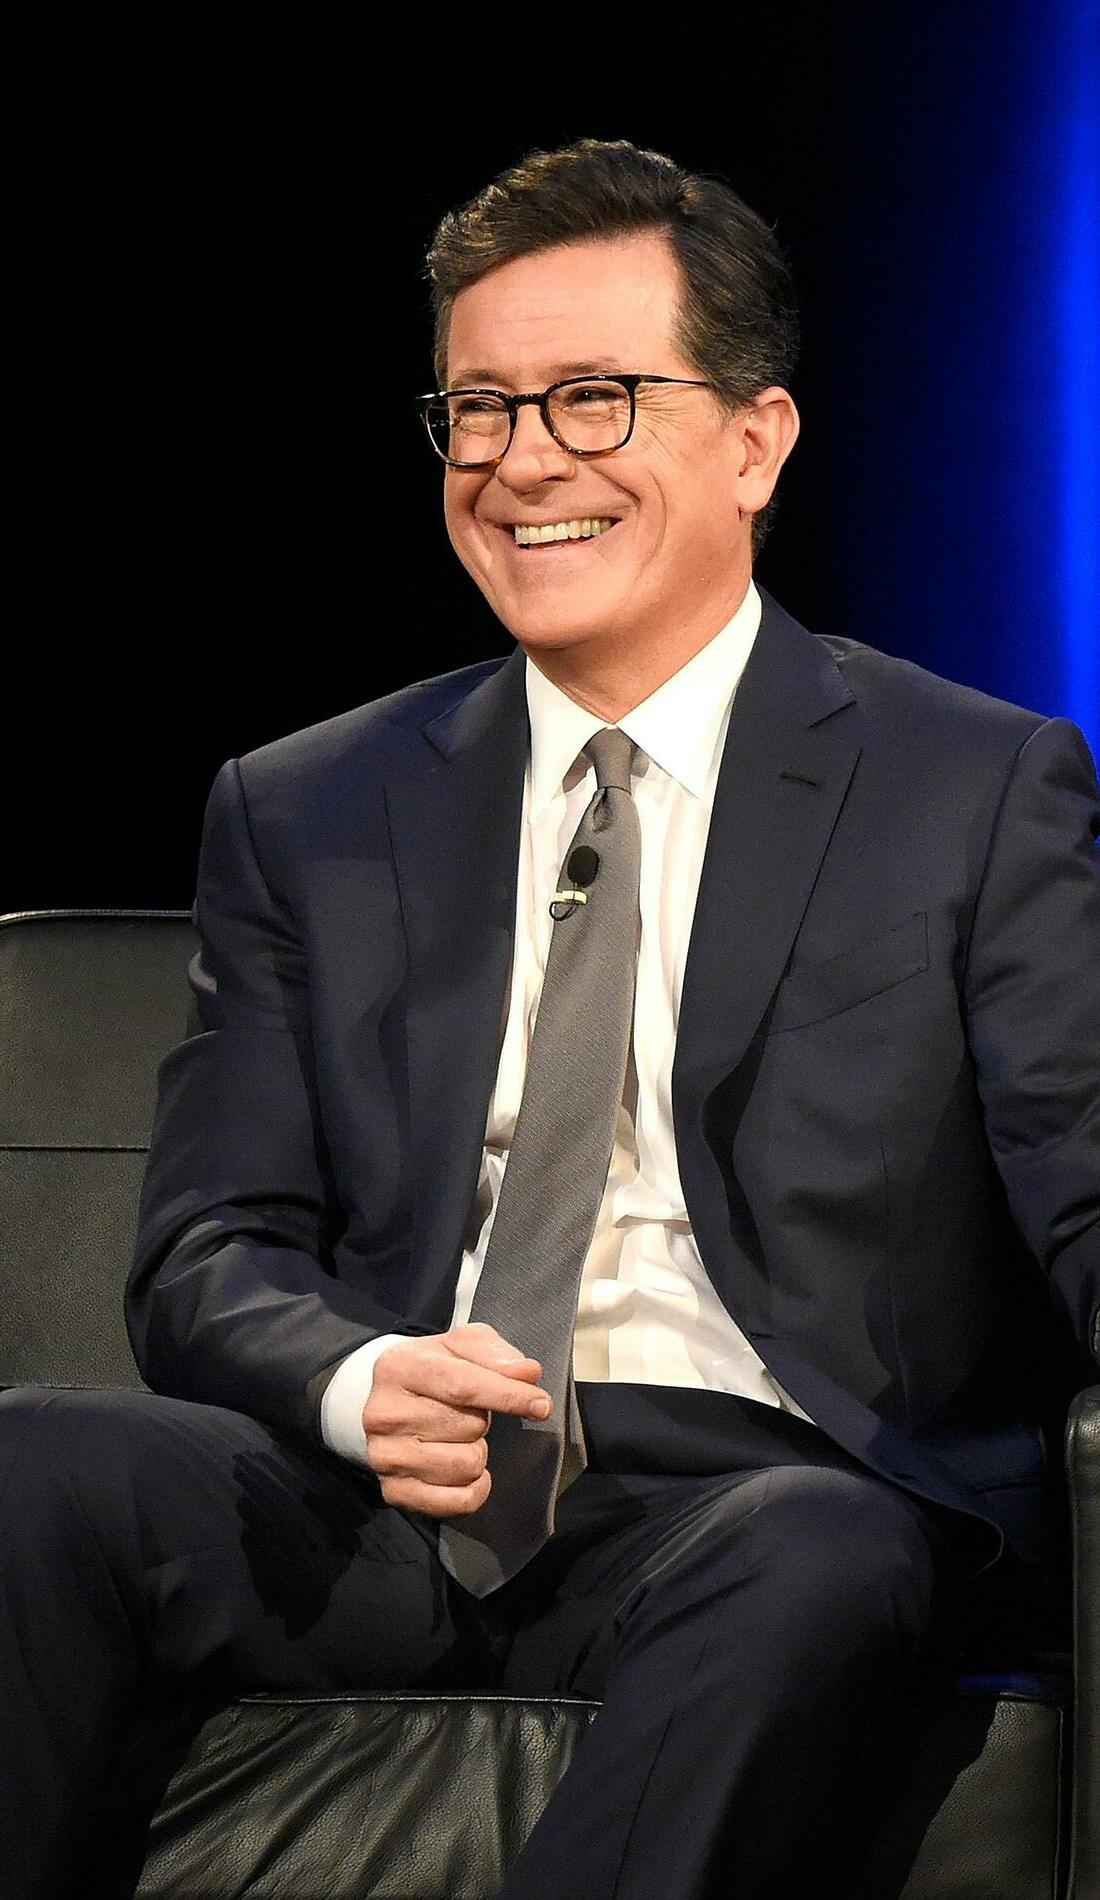 A Stephen Colbert live event